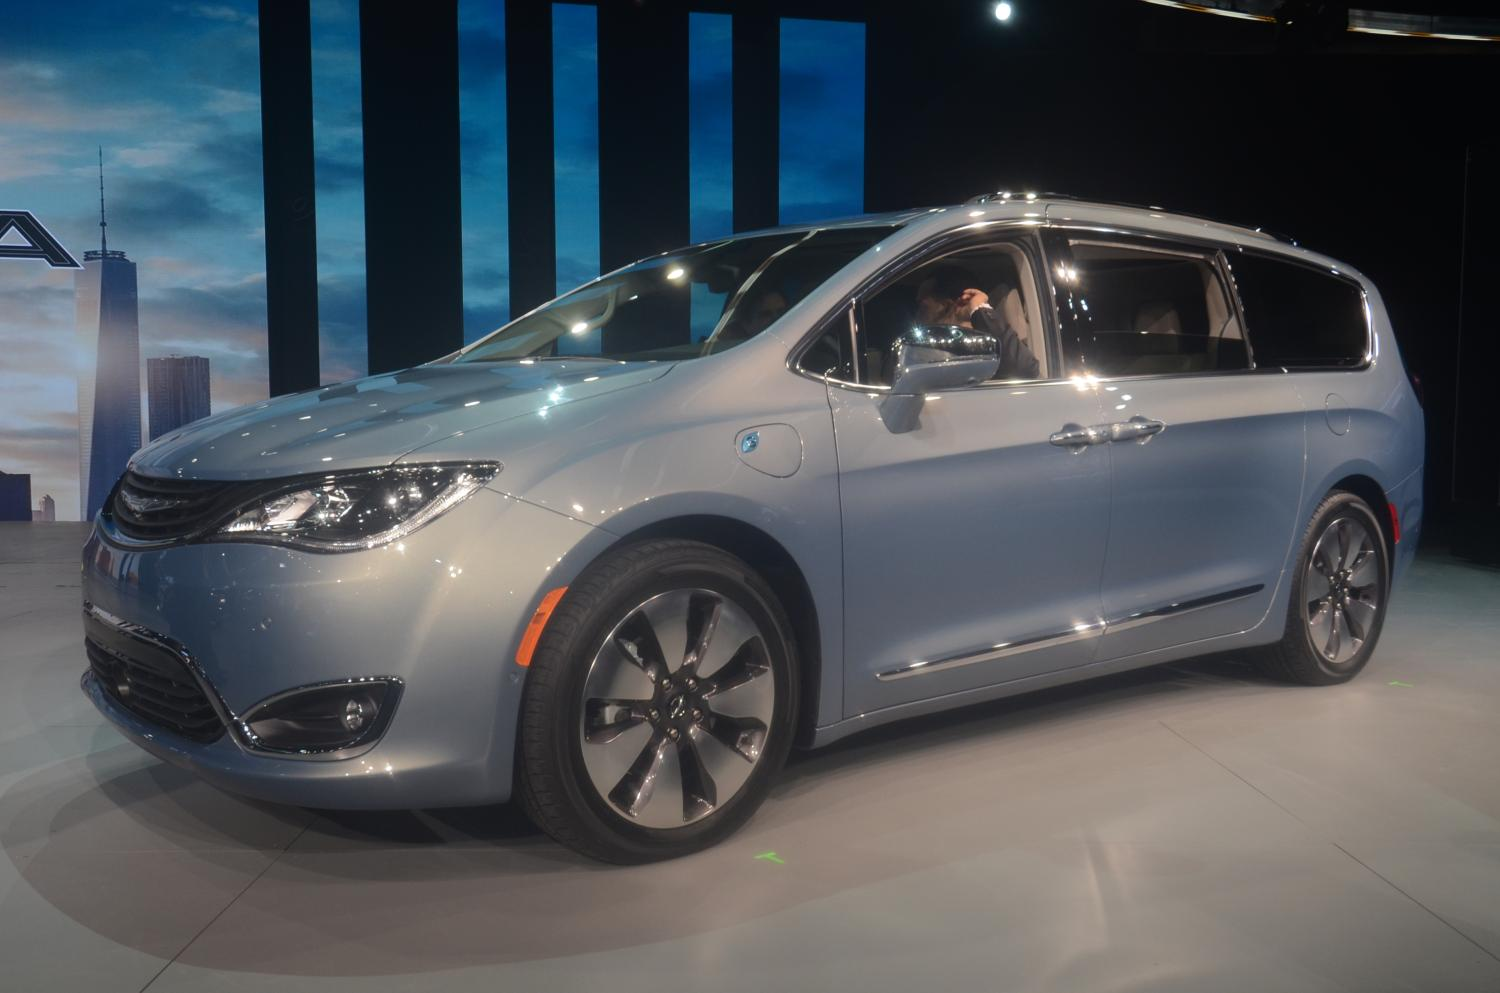 2017 chrysler pacifica hybrid hits 75 mph in ev mode has two electric motors autoevolution. Black Bedroom Furniture Sets. Home Design Ideas